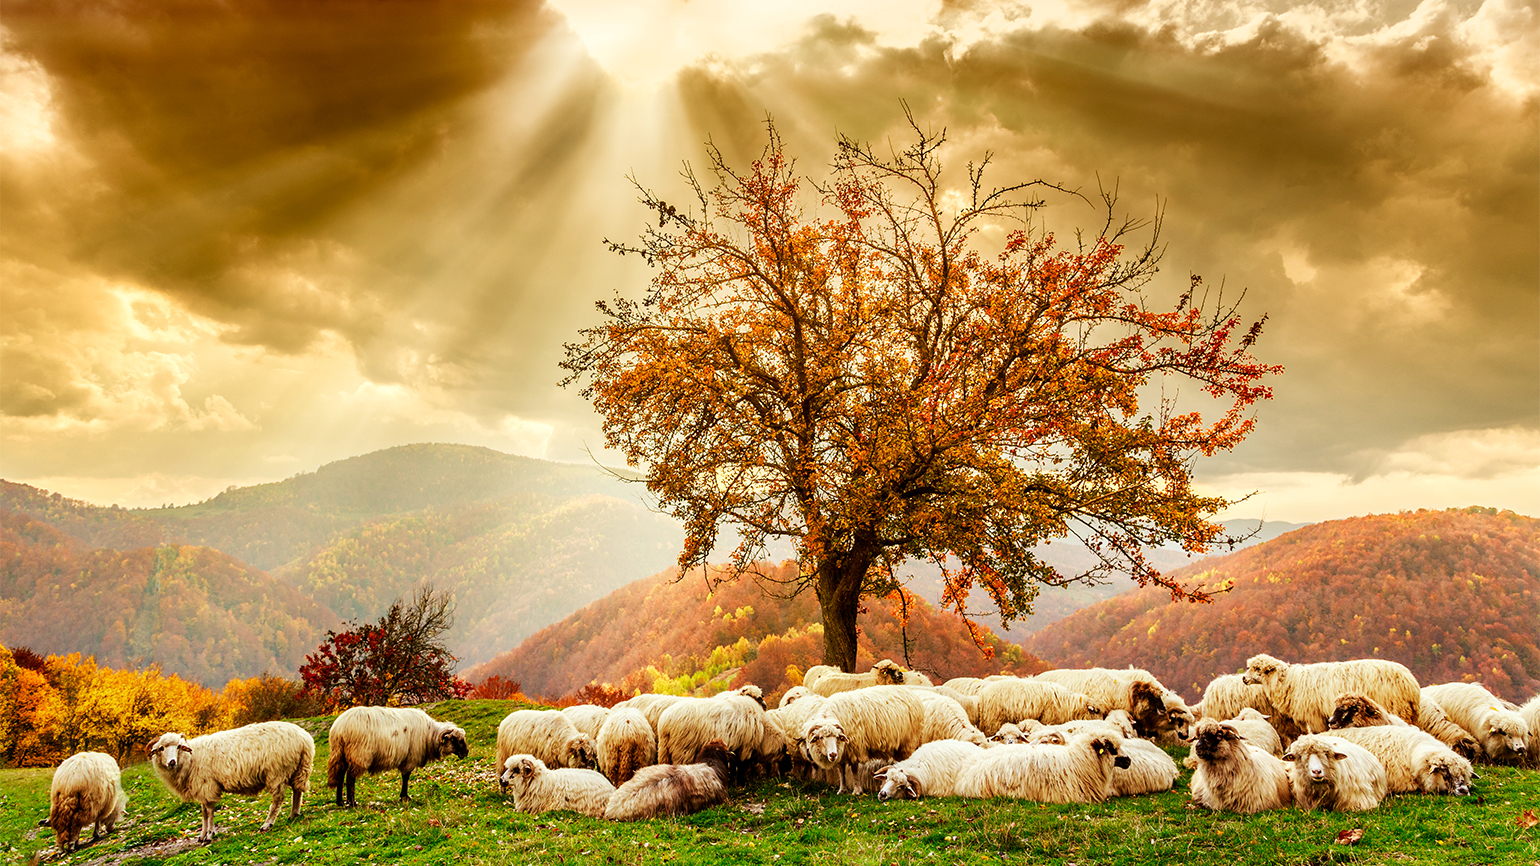 Light streams down on a flock of sheep